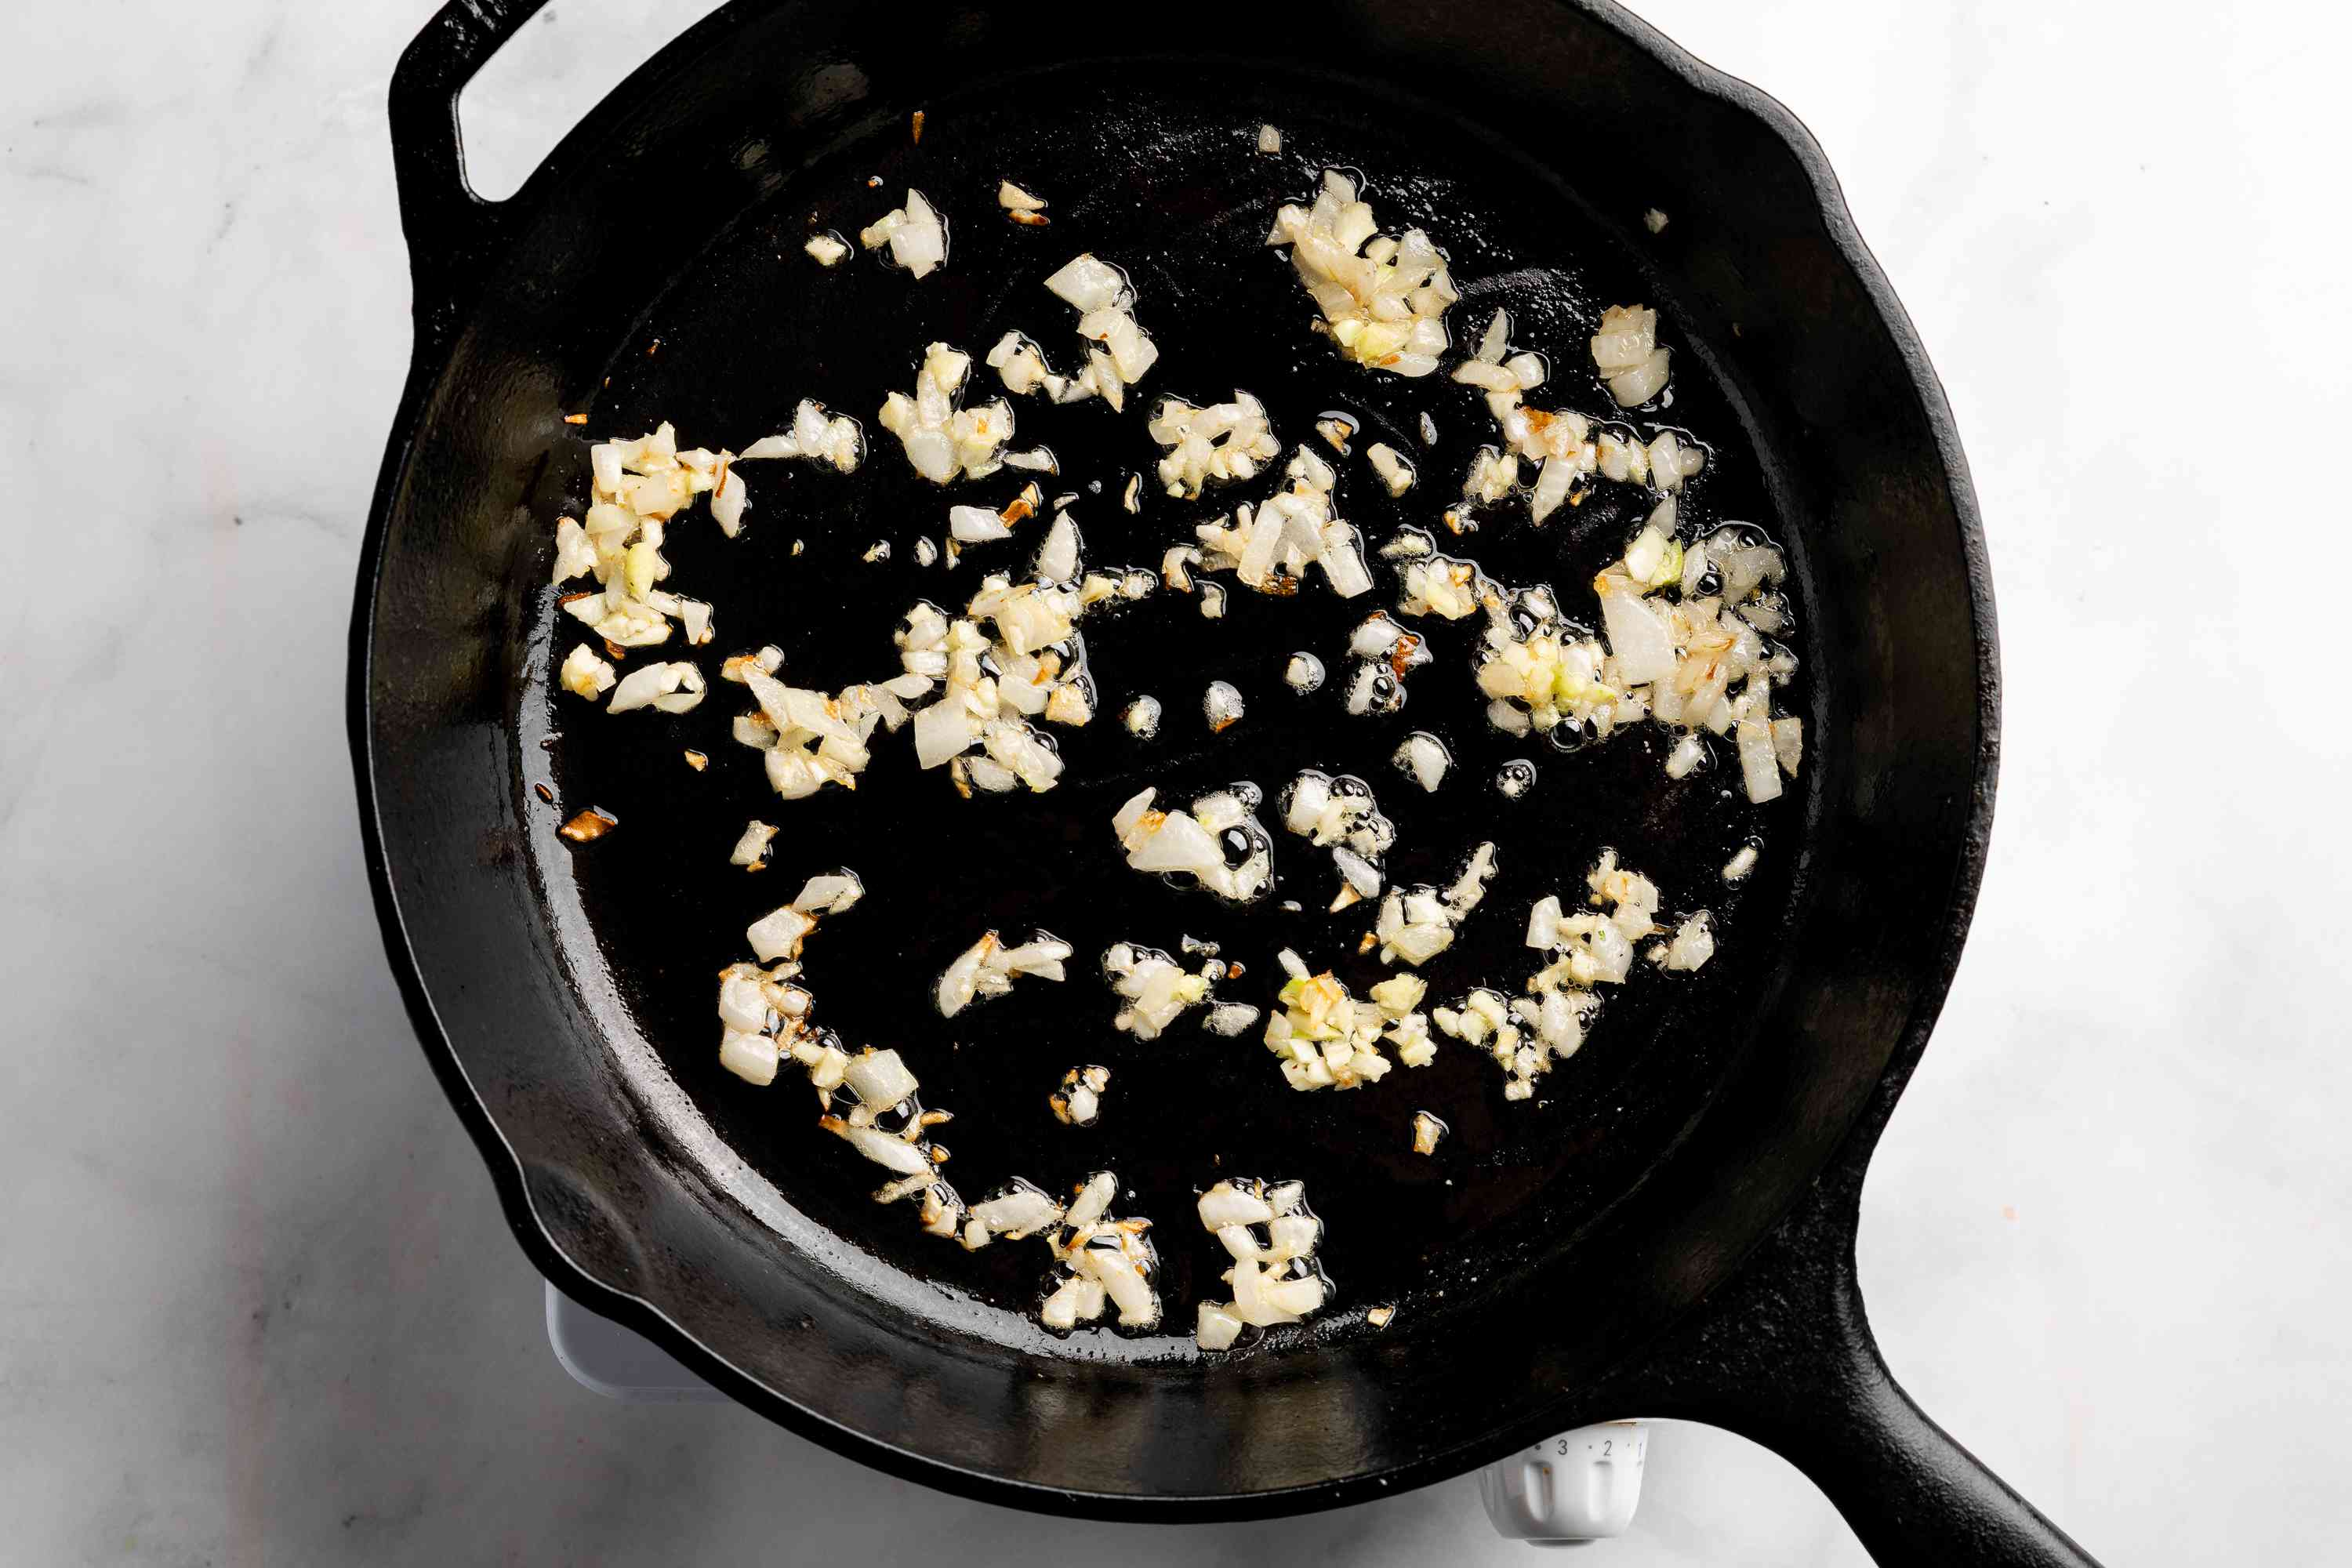 onions and garlic cooking in a skillet